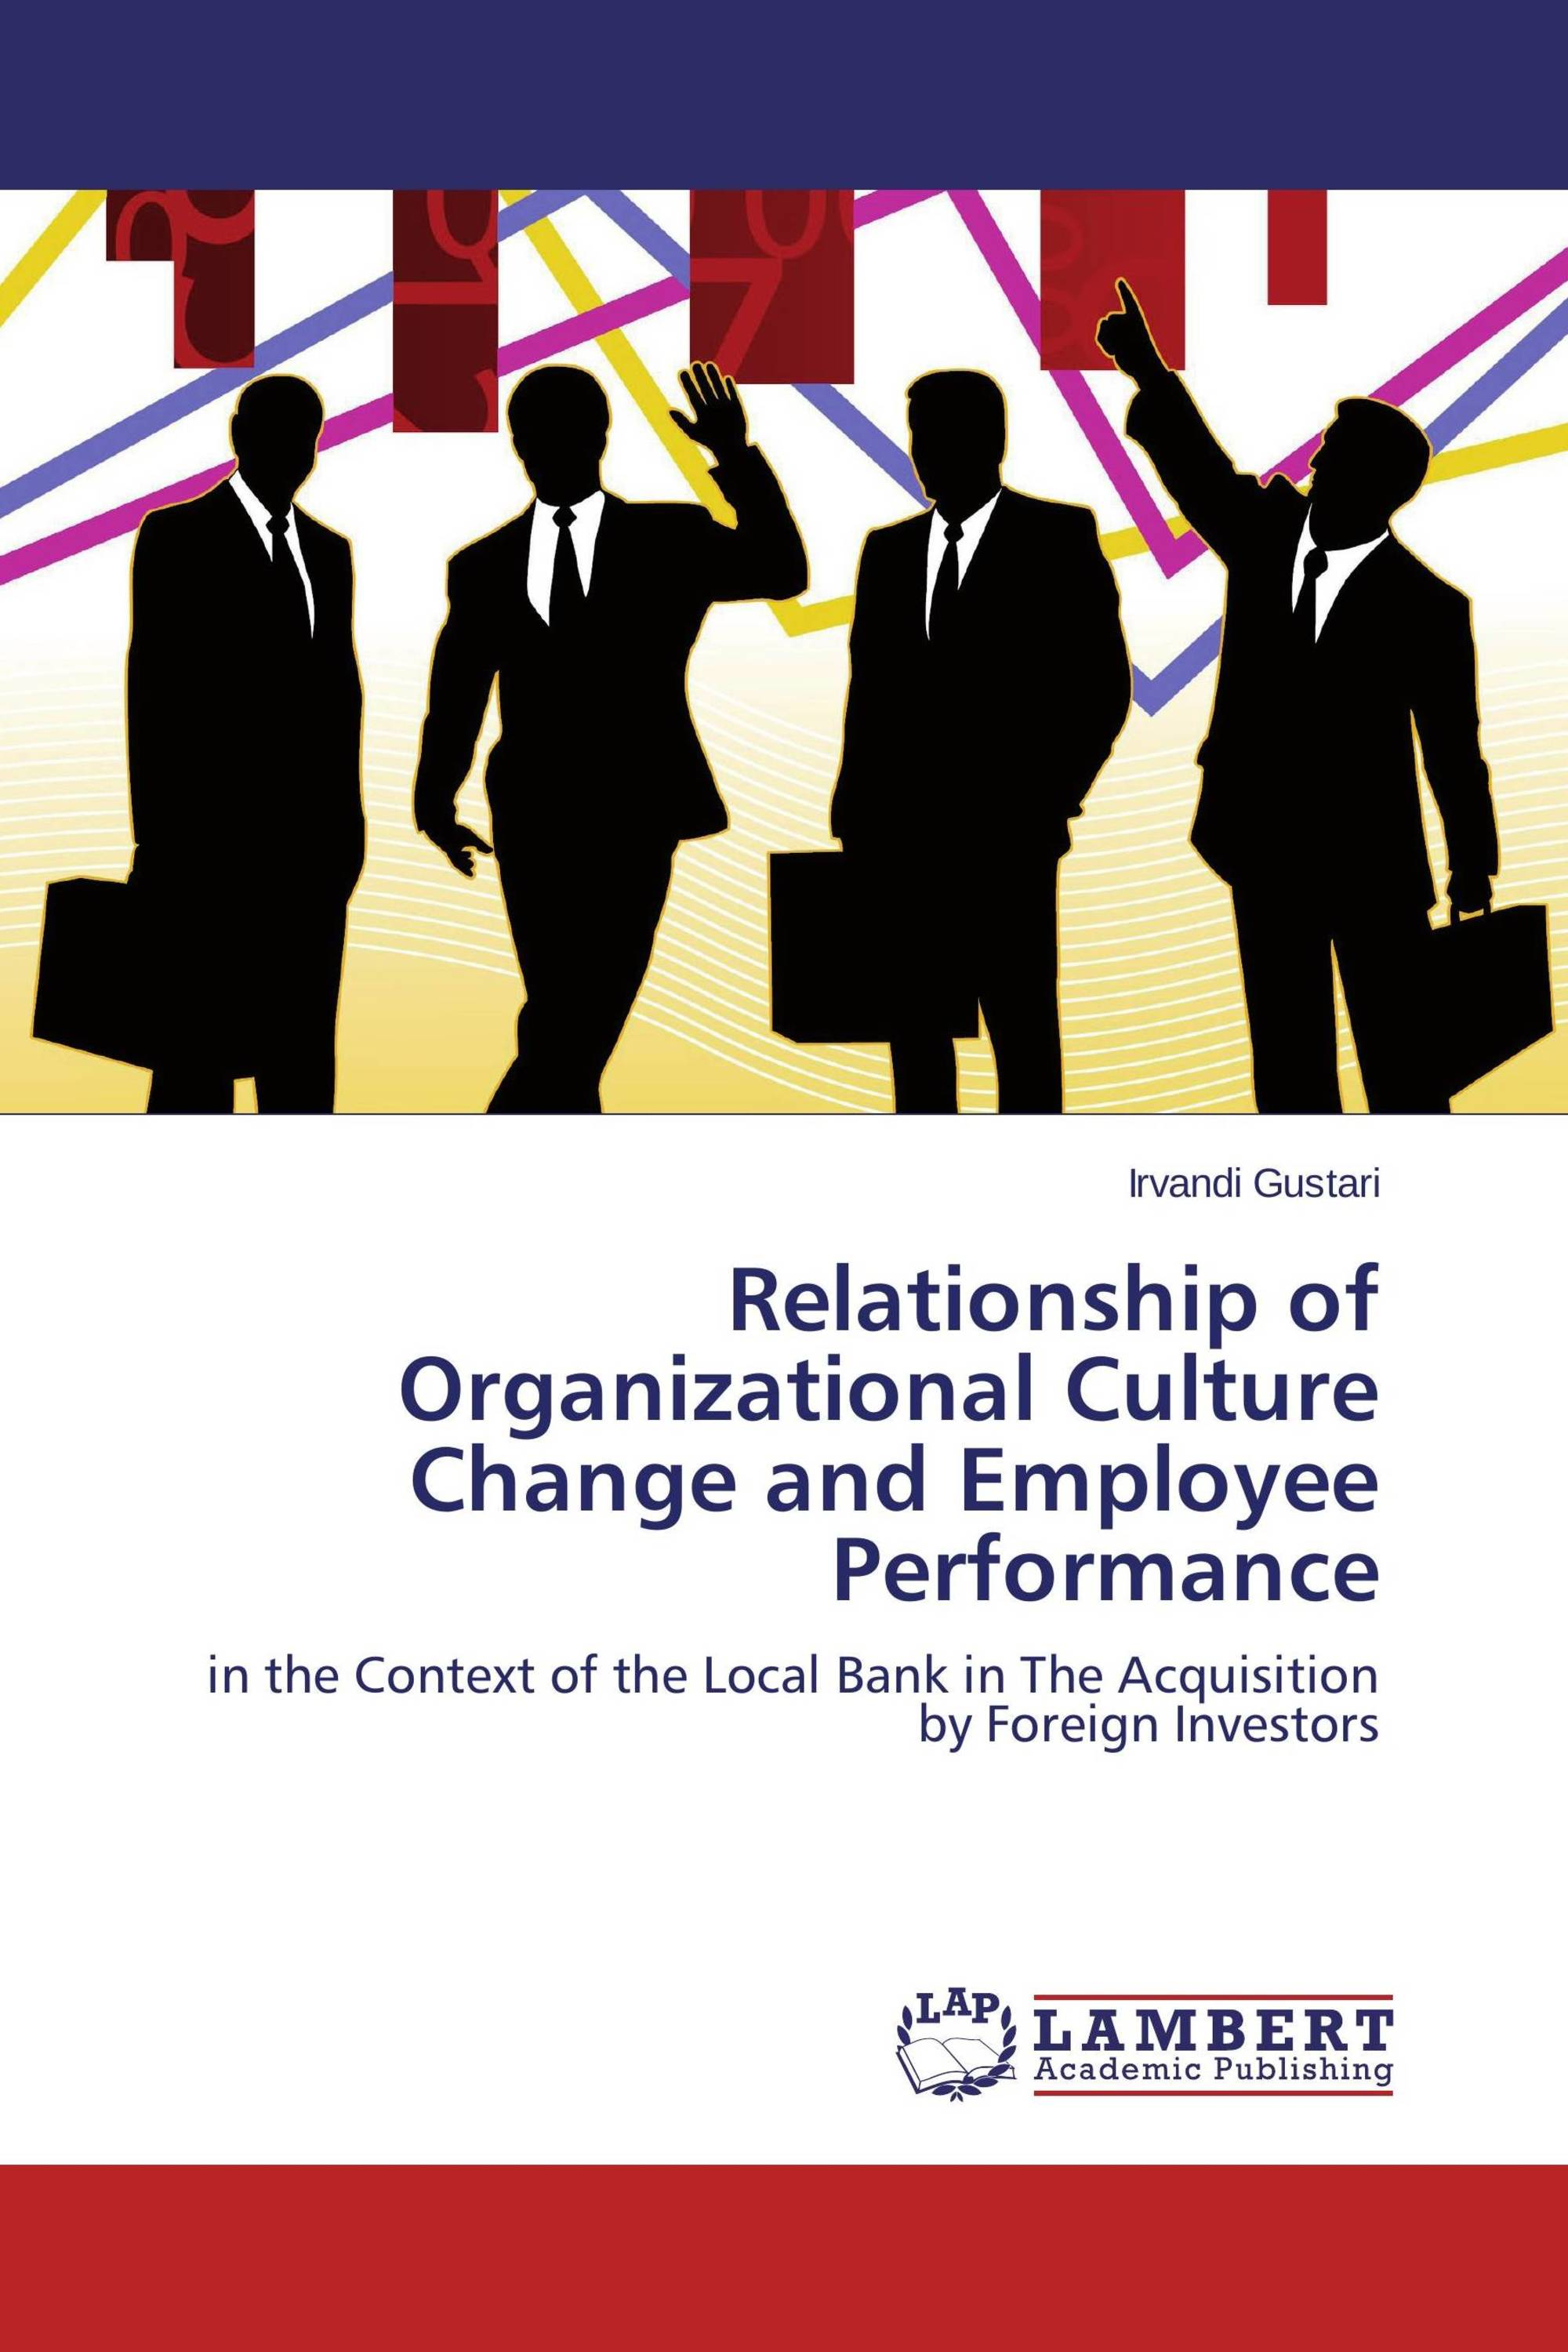 the impact of corporate culture on Among the many factors that affect an organization's ability to innovate, compete, and engage employees and customers is corporate culture corporate culture is the amalgamation of values, vision, mission, and the day-to-day aspects of communication, interaction, and operational goals that create the organizational atmosphere that pervades the way people work.